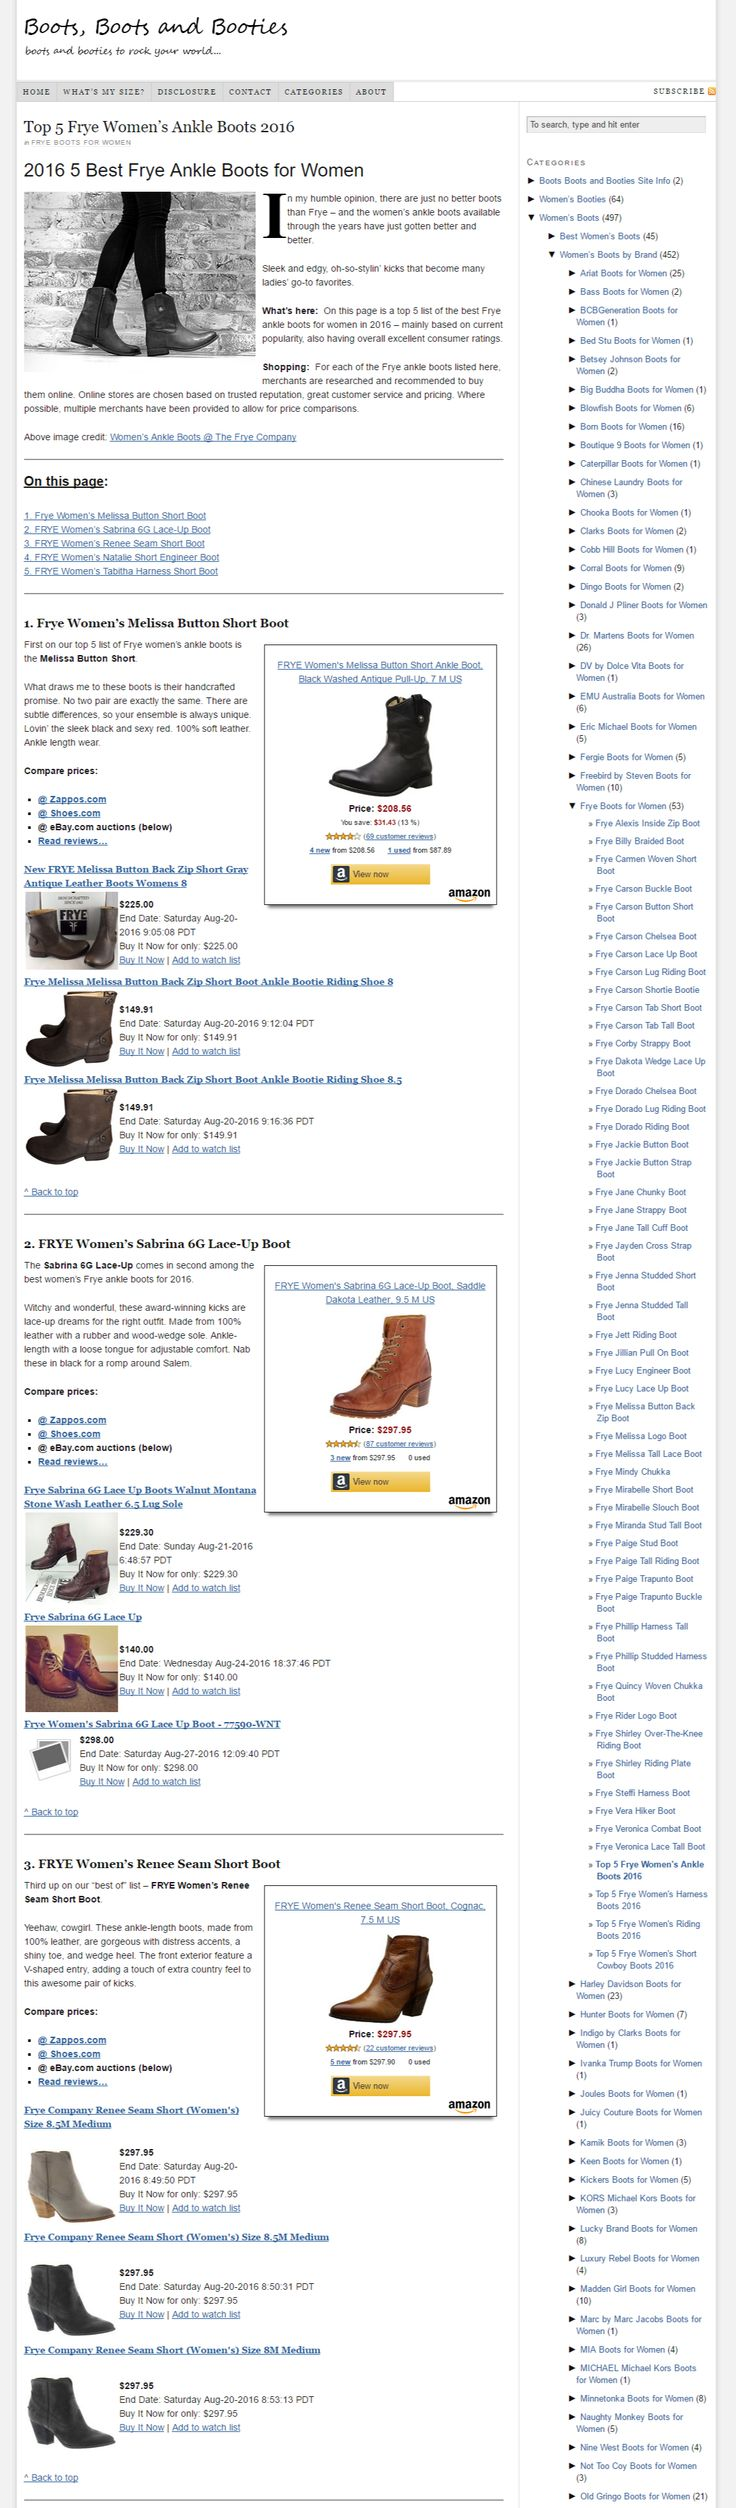 2016 Best Frye Ankle Boots for Women - Top 5 List @ Boots, Boots and Booties